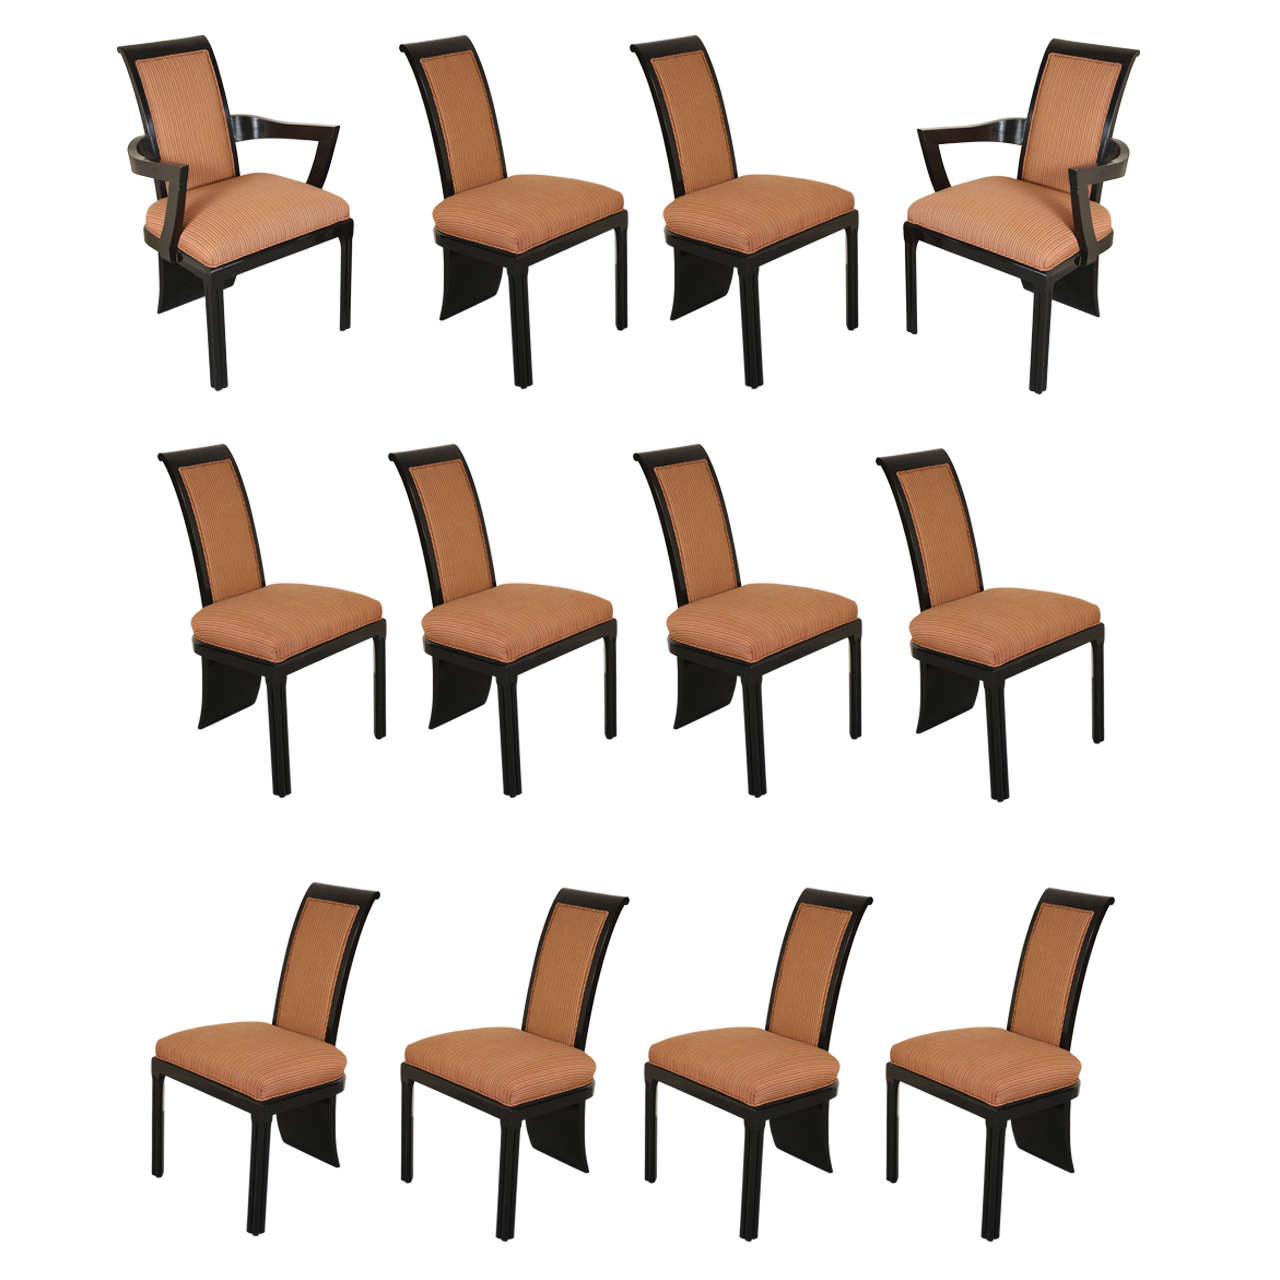 Fabulous Set Of 12 Tail Coat Dining Chairs By James Mont At 1stdibs